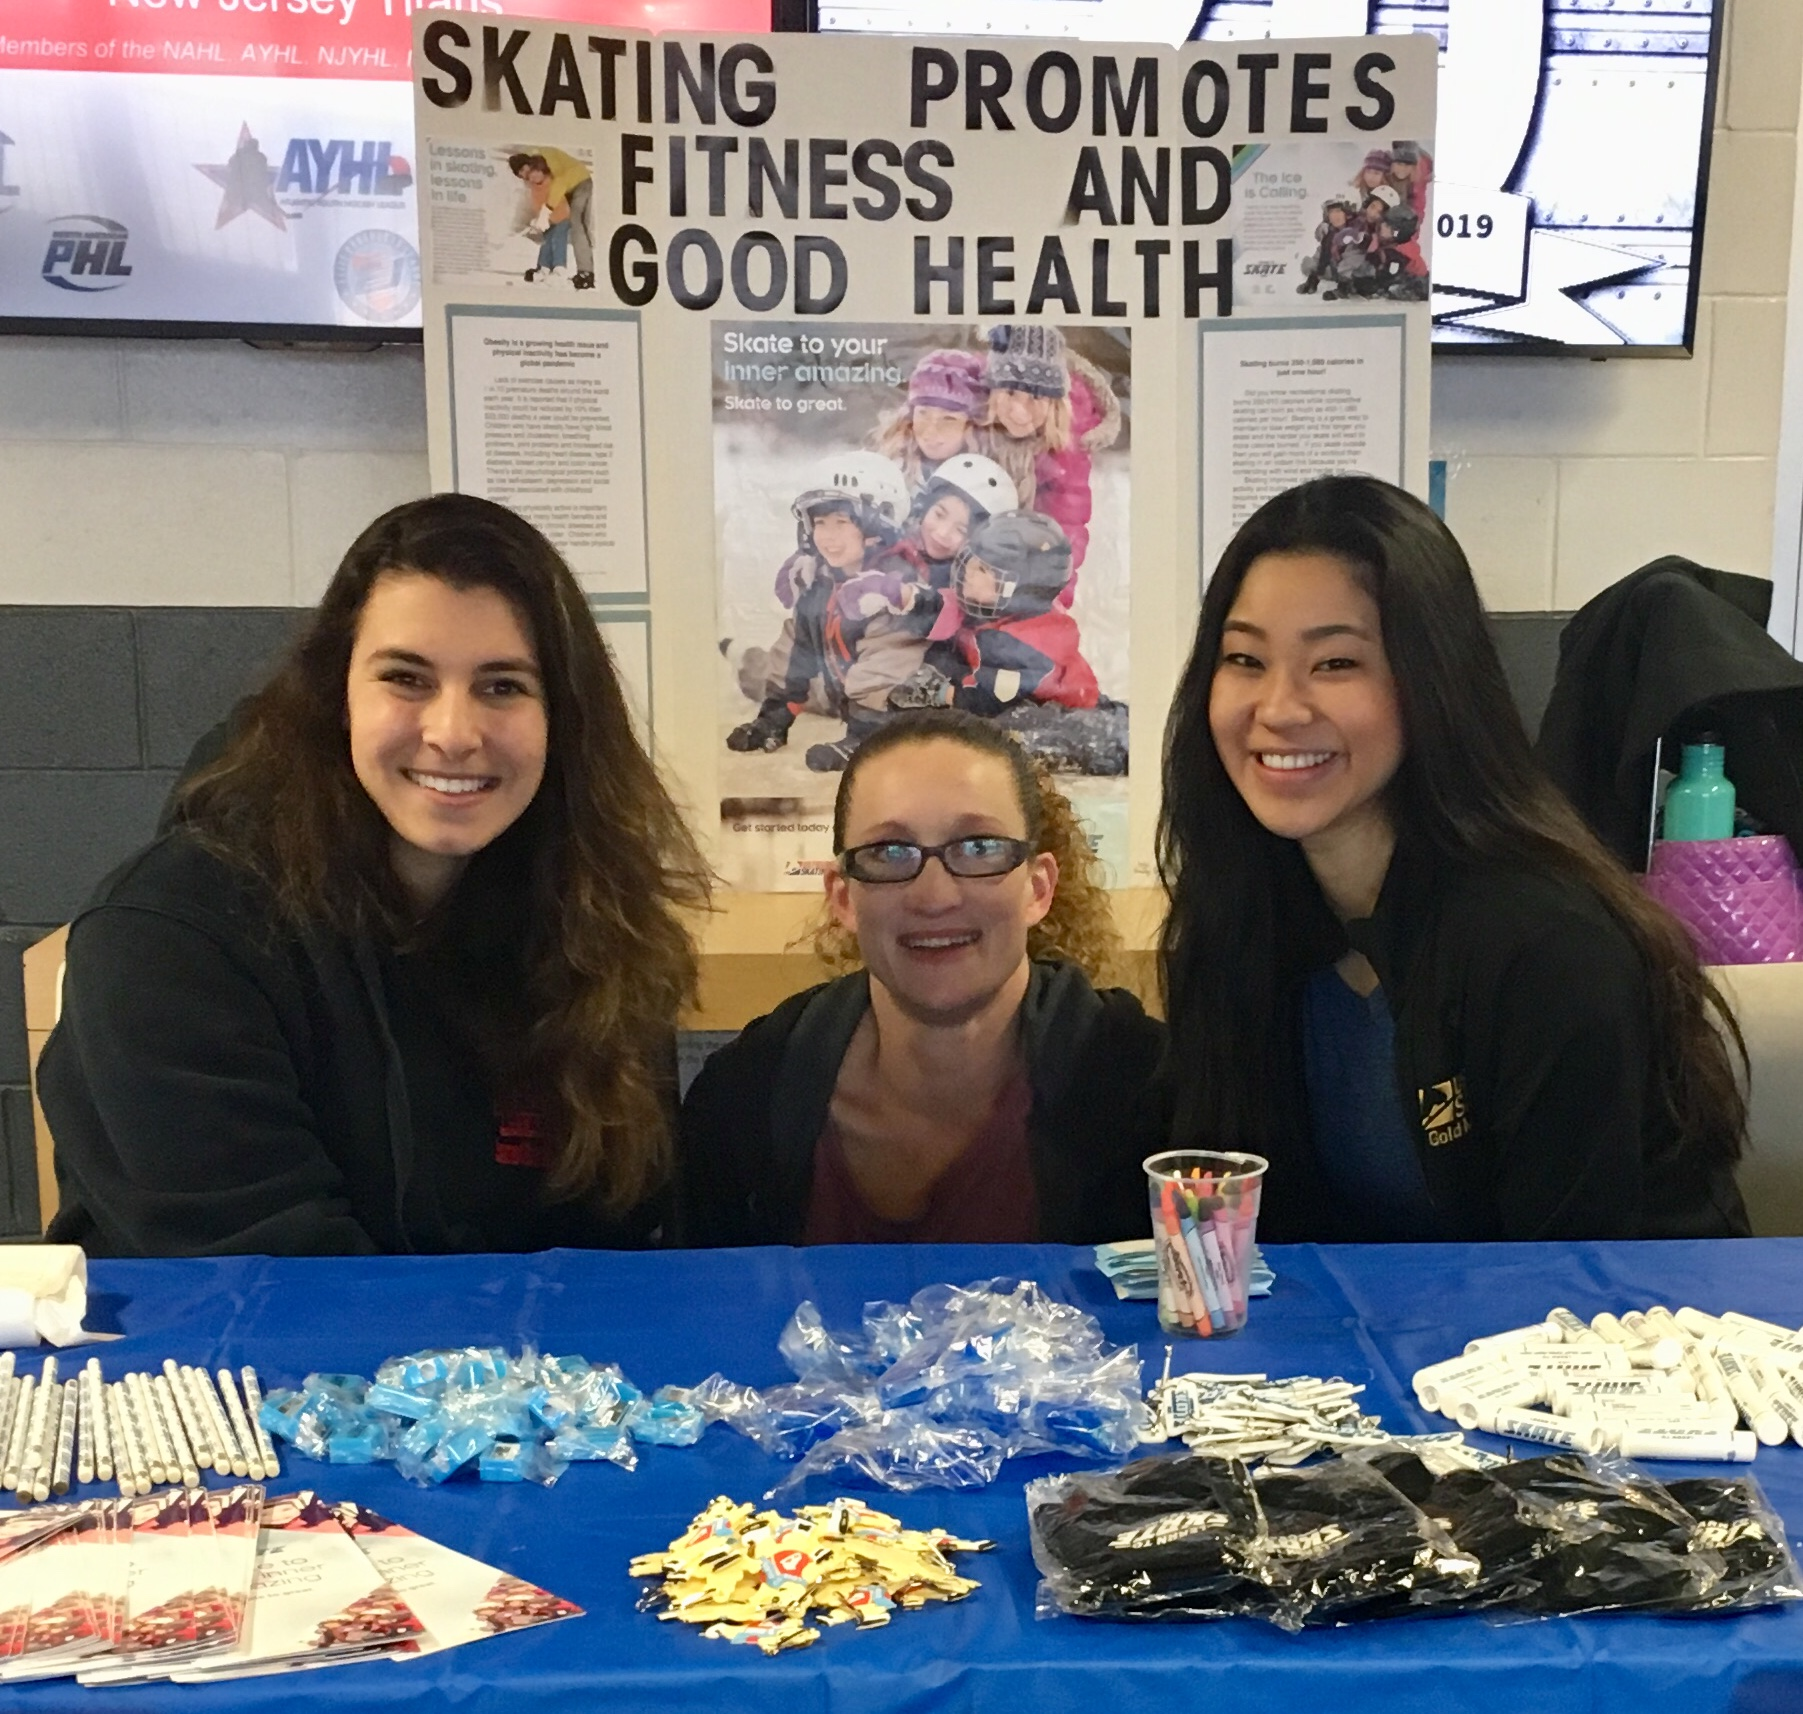 I couldn't have pulled off such a successful open house skating event without the help and support of Middletown Skating Academy Director, Christy Callas (center) & Ass't Skating Director, Sage Chermin (left).